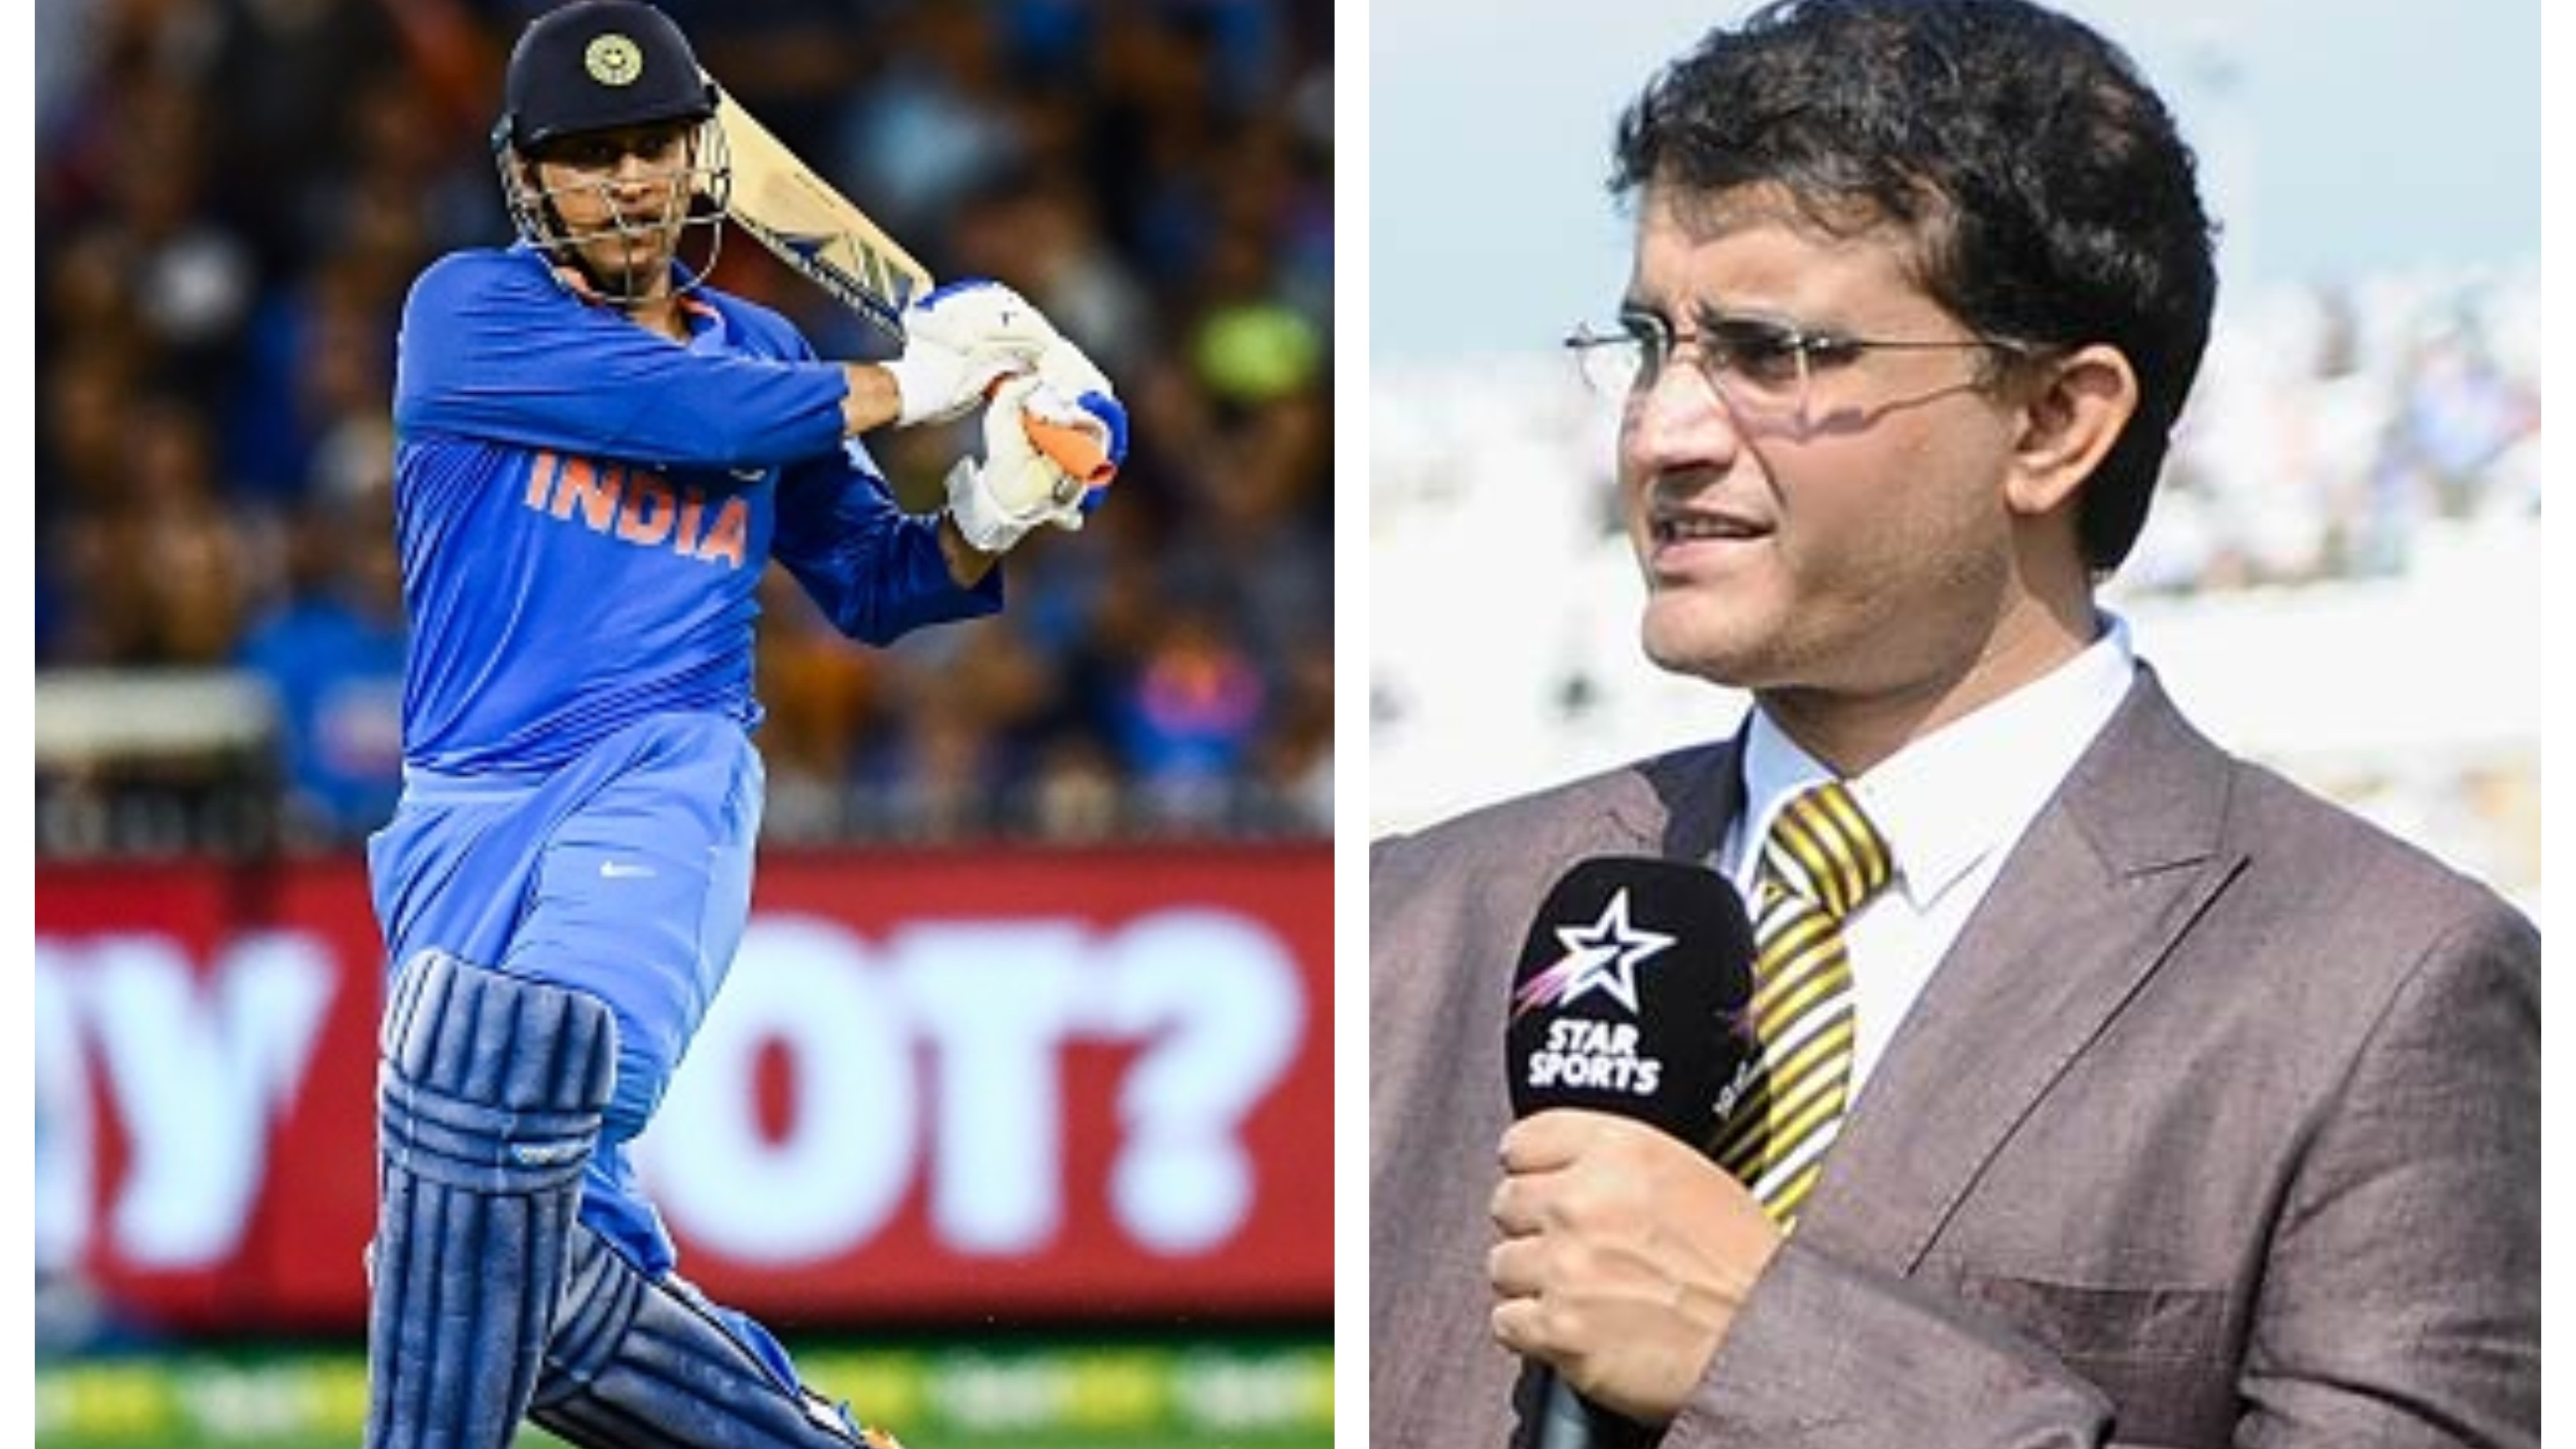 AUS v IND 2018-19: Sourav Ganguly wants MS Dhoni to bat at No.4 in World Cup 2019